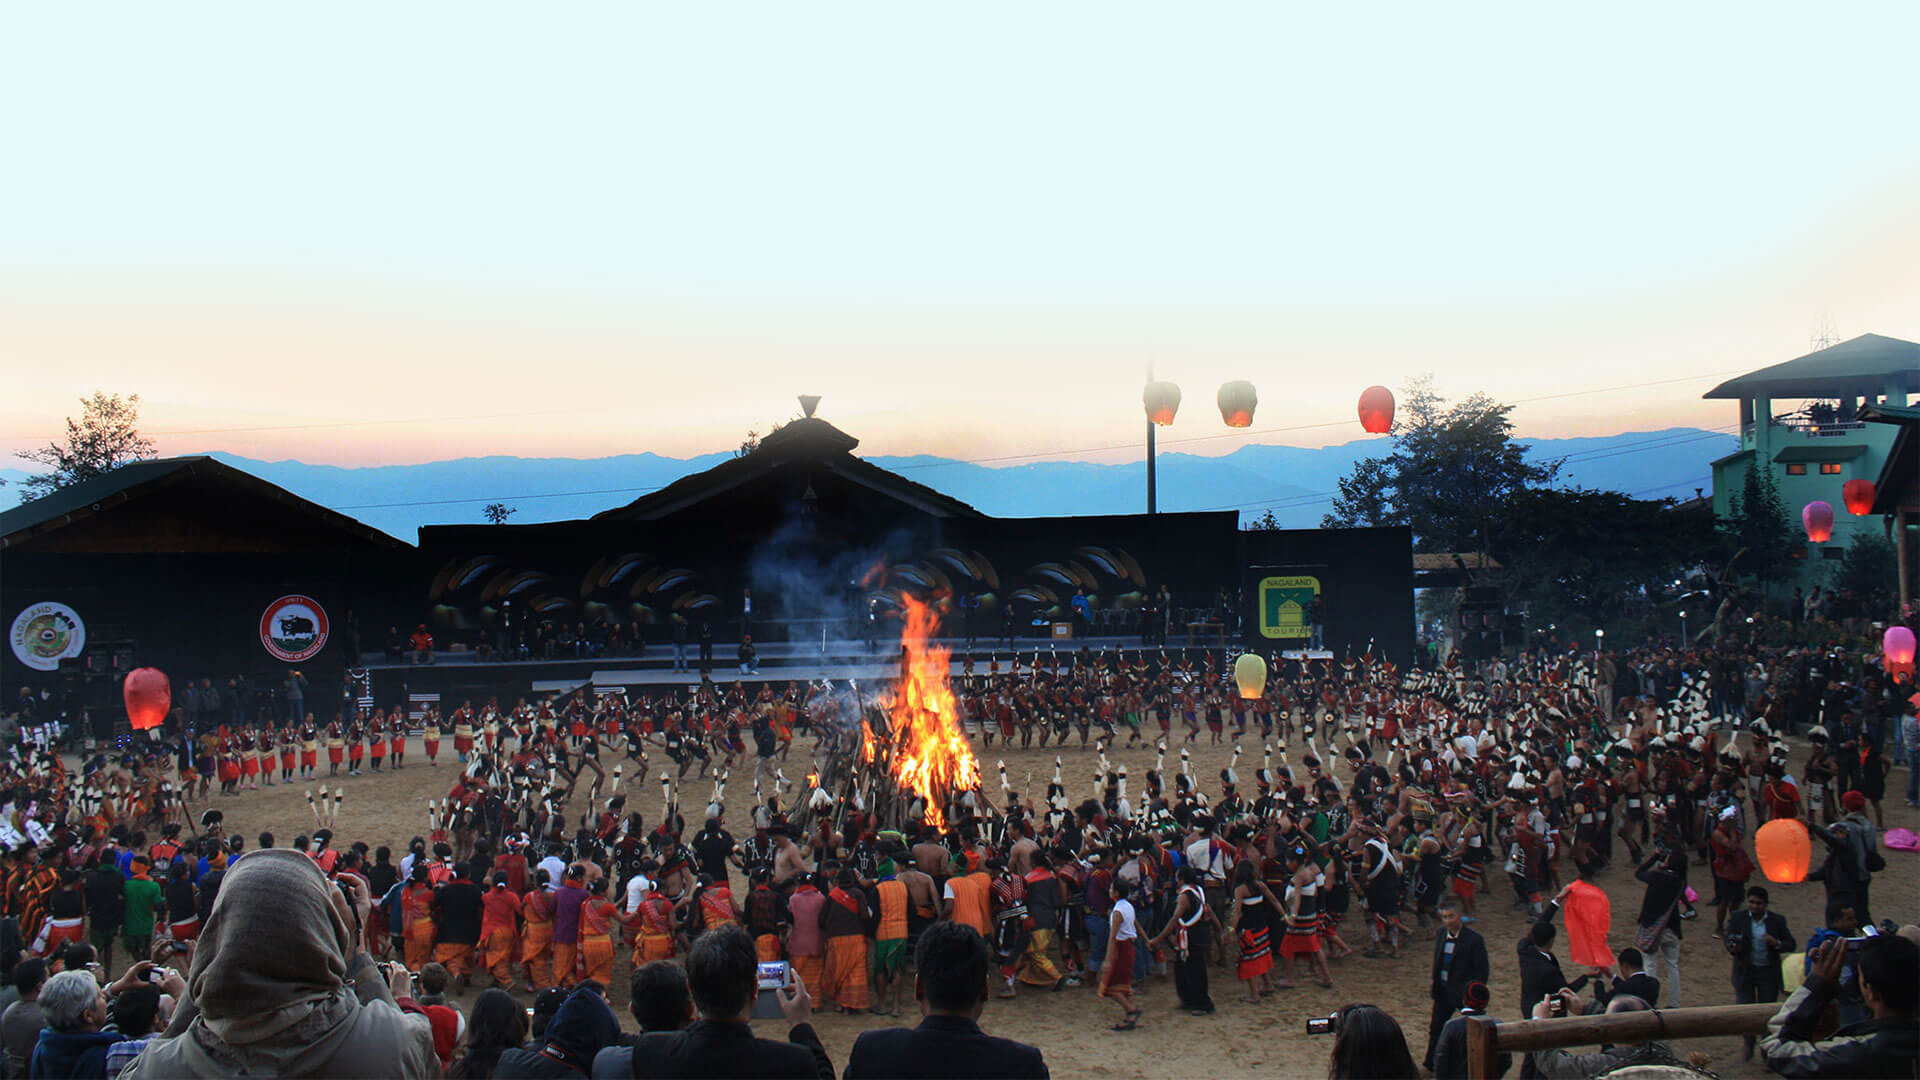 Gang_Ngai_Festival_Attractions